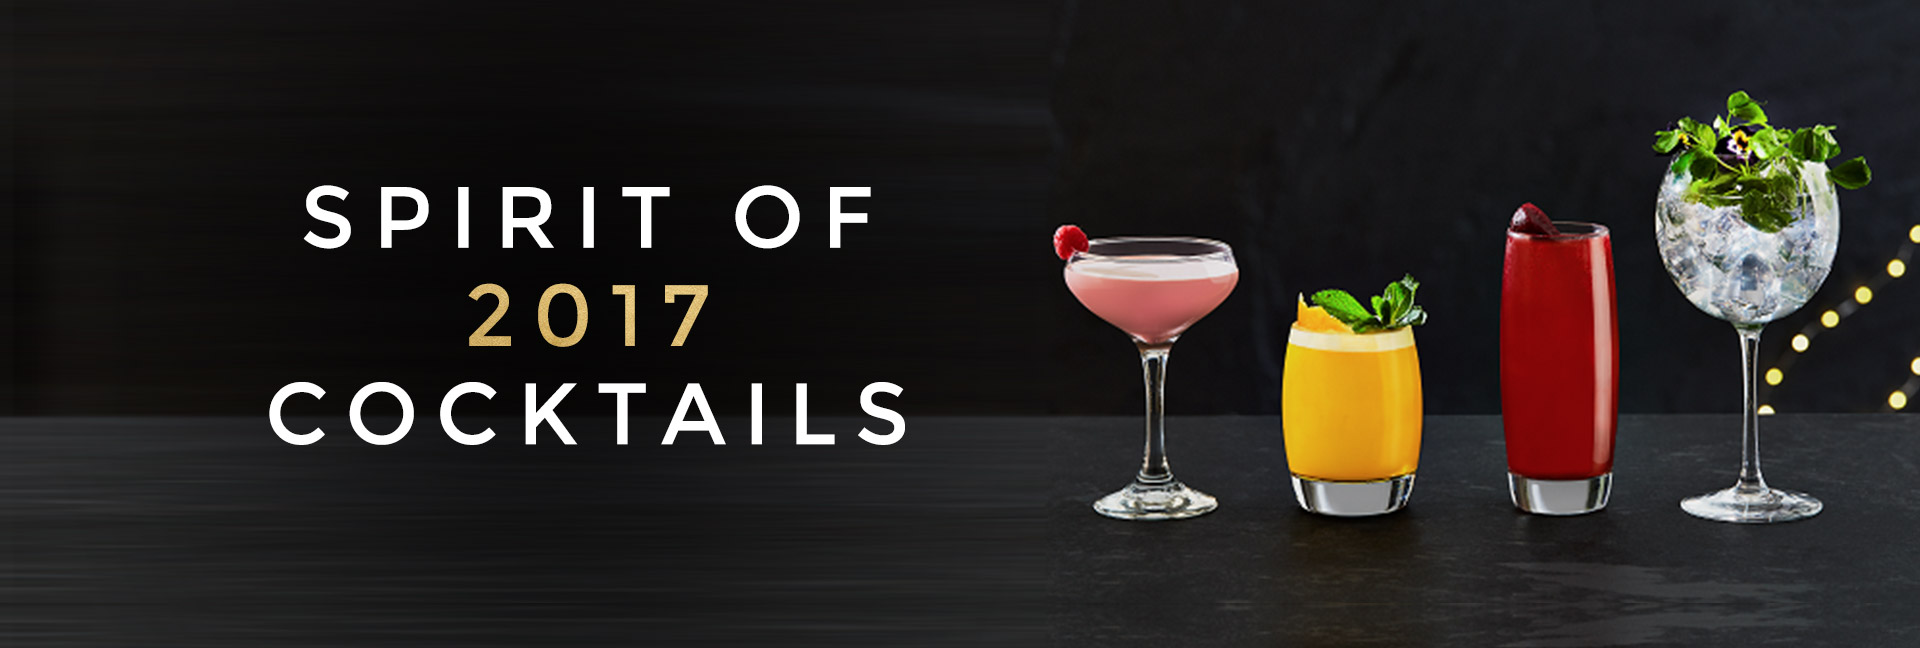 Spirit of 2017 cocktails at All Bar One Trafford Centre